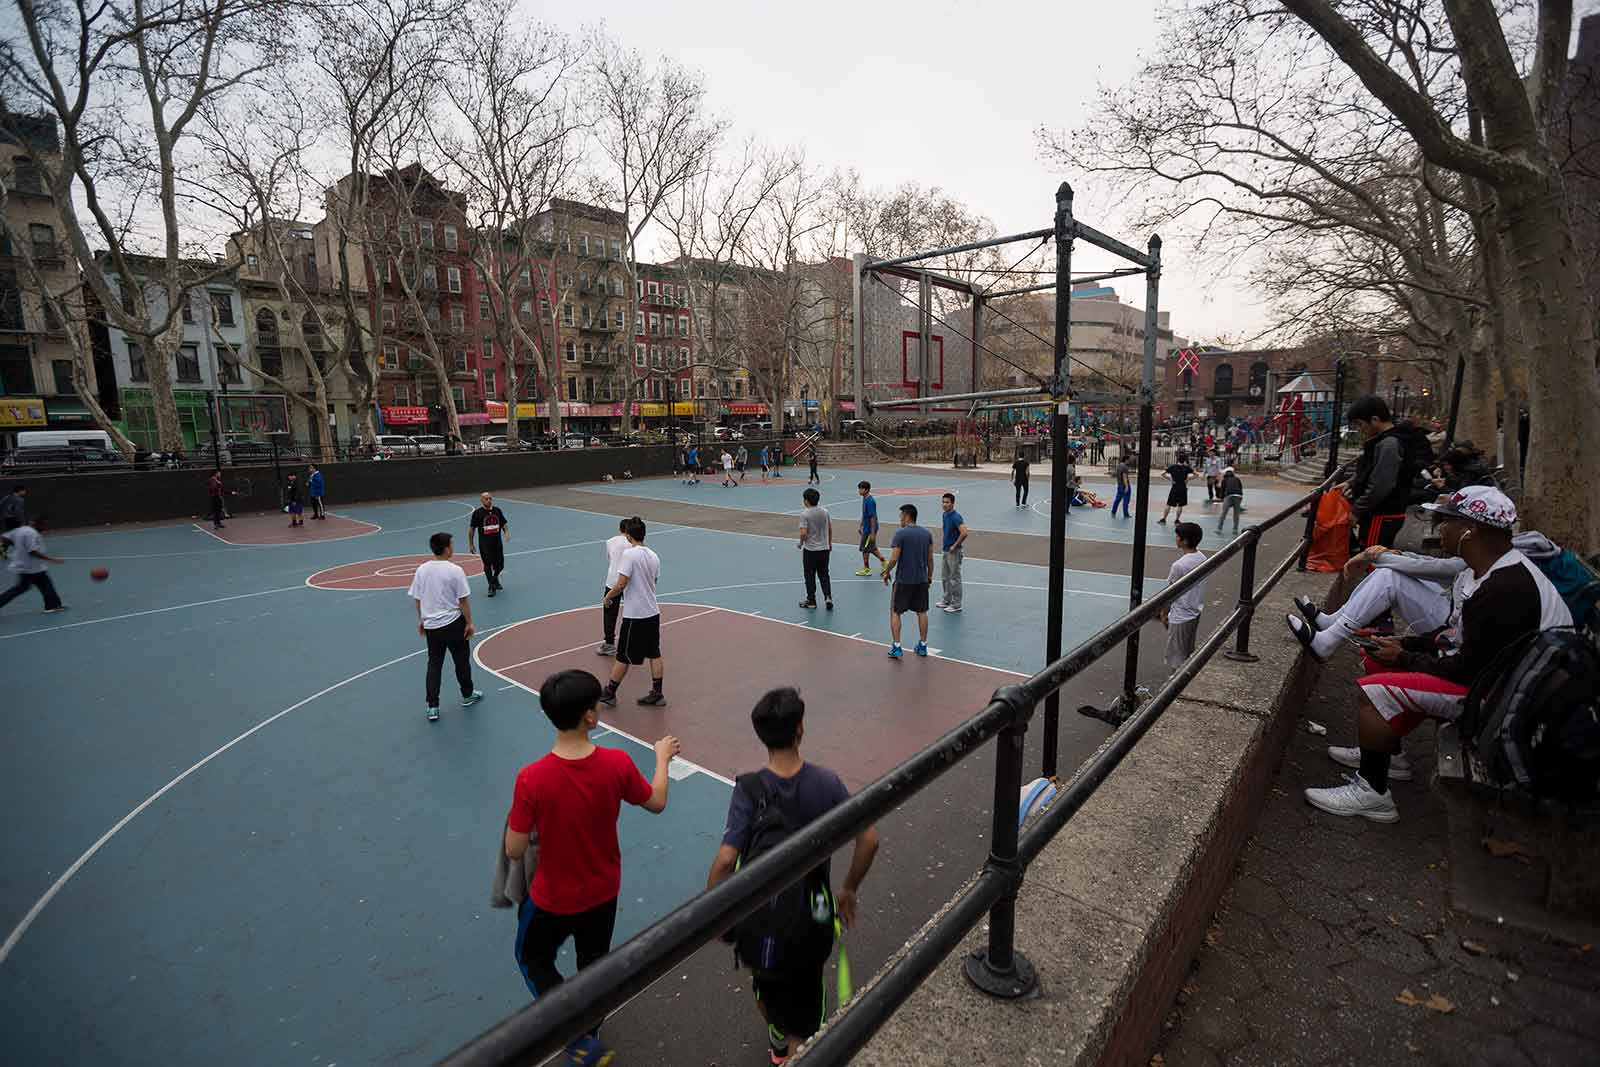 The basketball courts just off of Grand Street in Chinatown are the perfect spots for people-viewing.